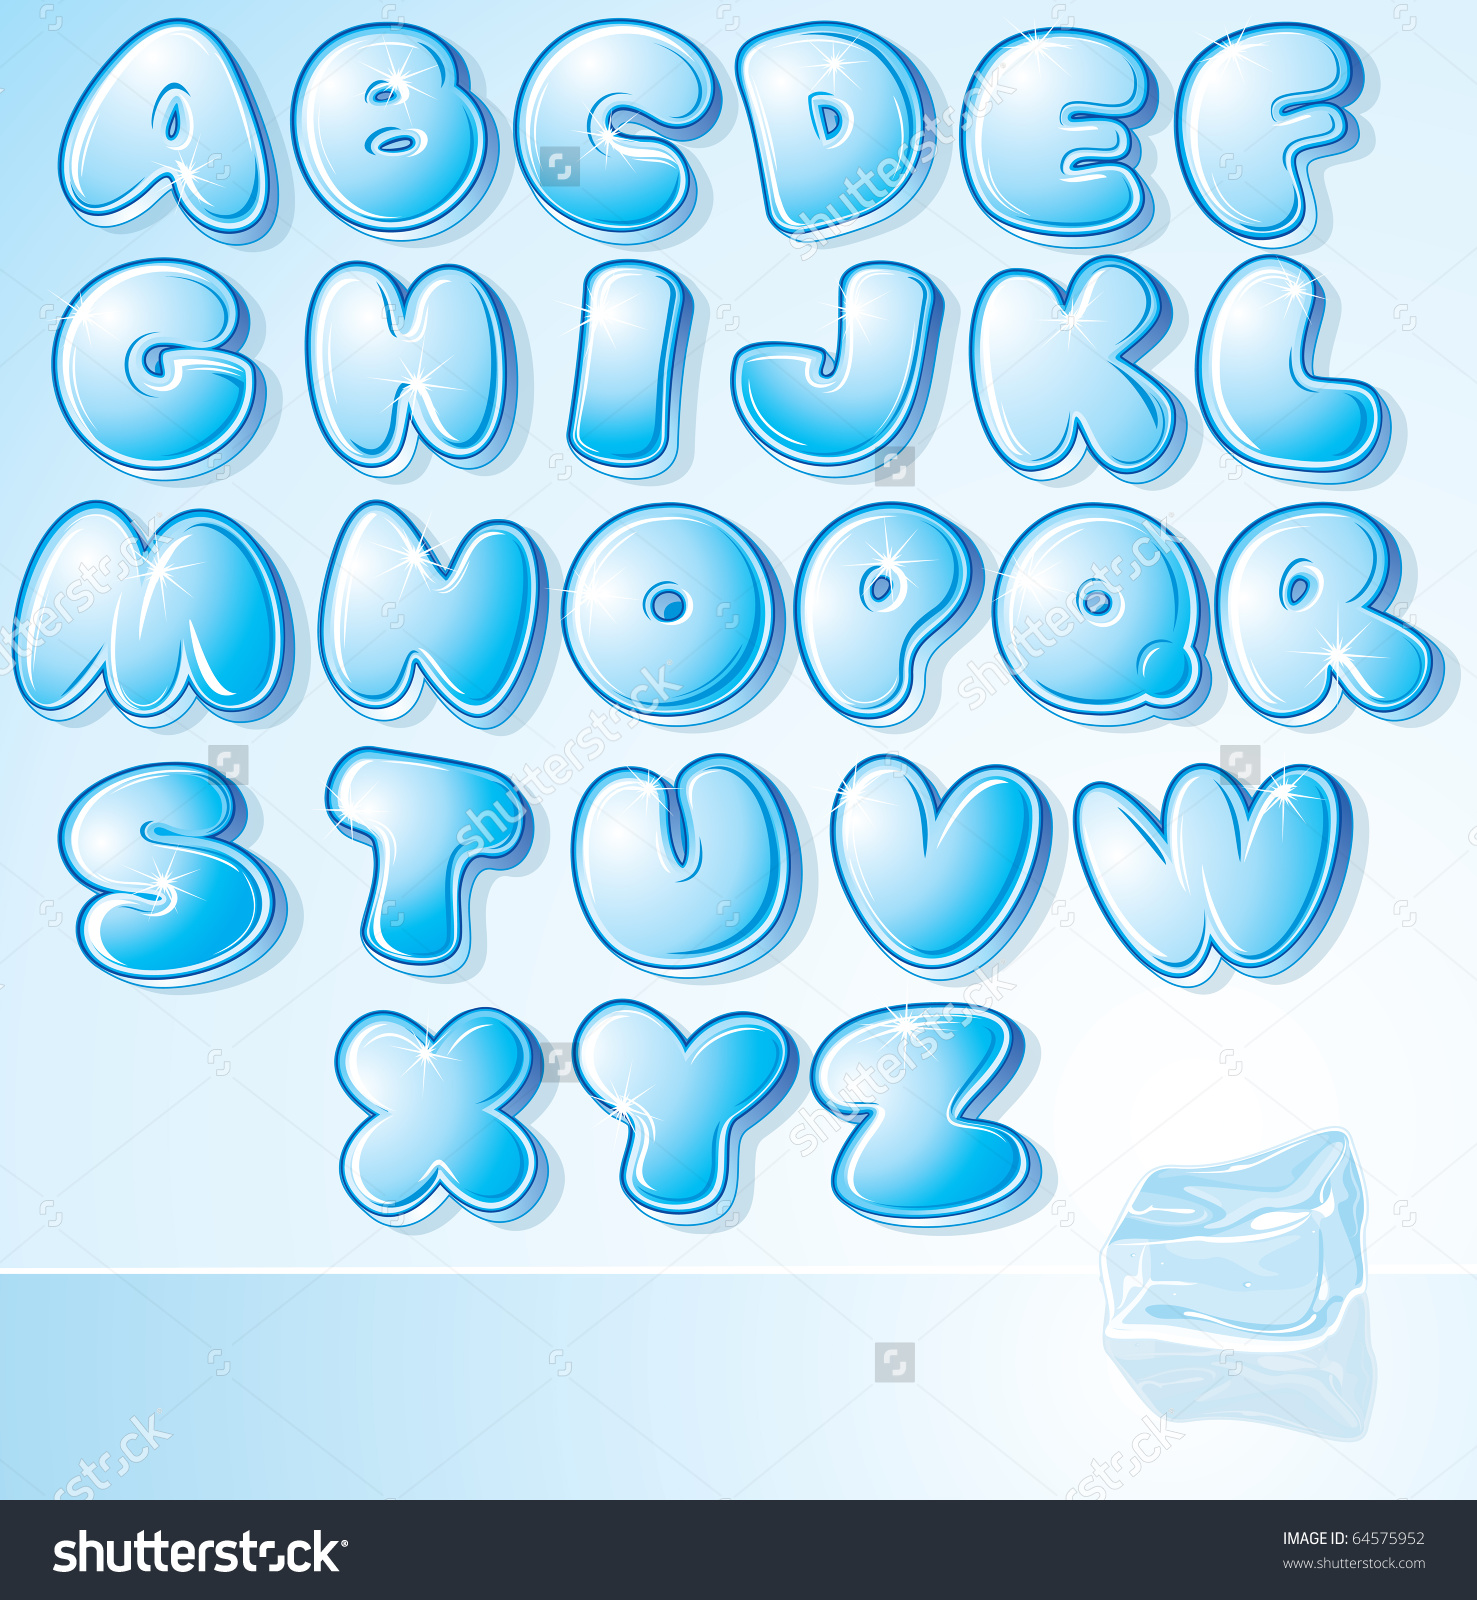 Funny Cartoon Shine Icy Font Letter Stock Vector 64575952.